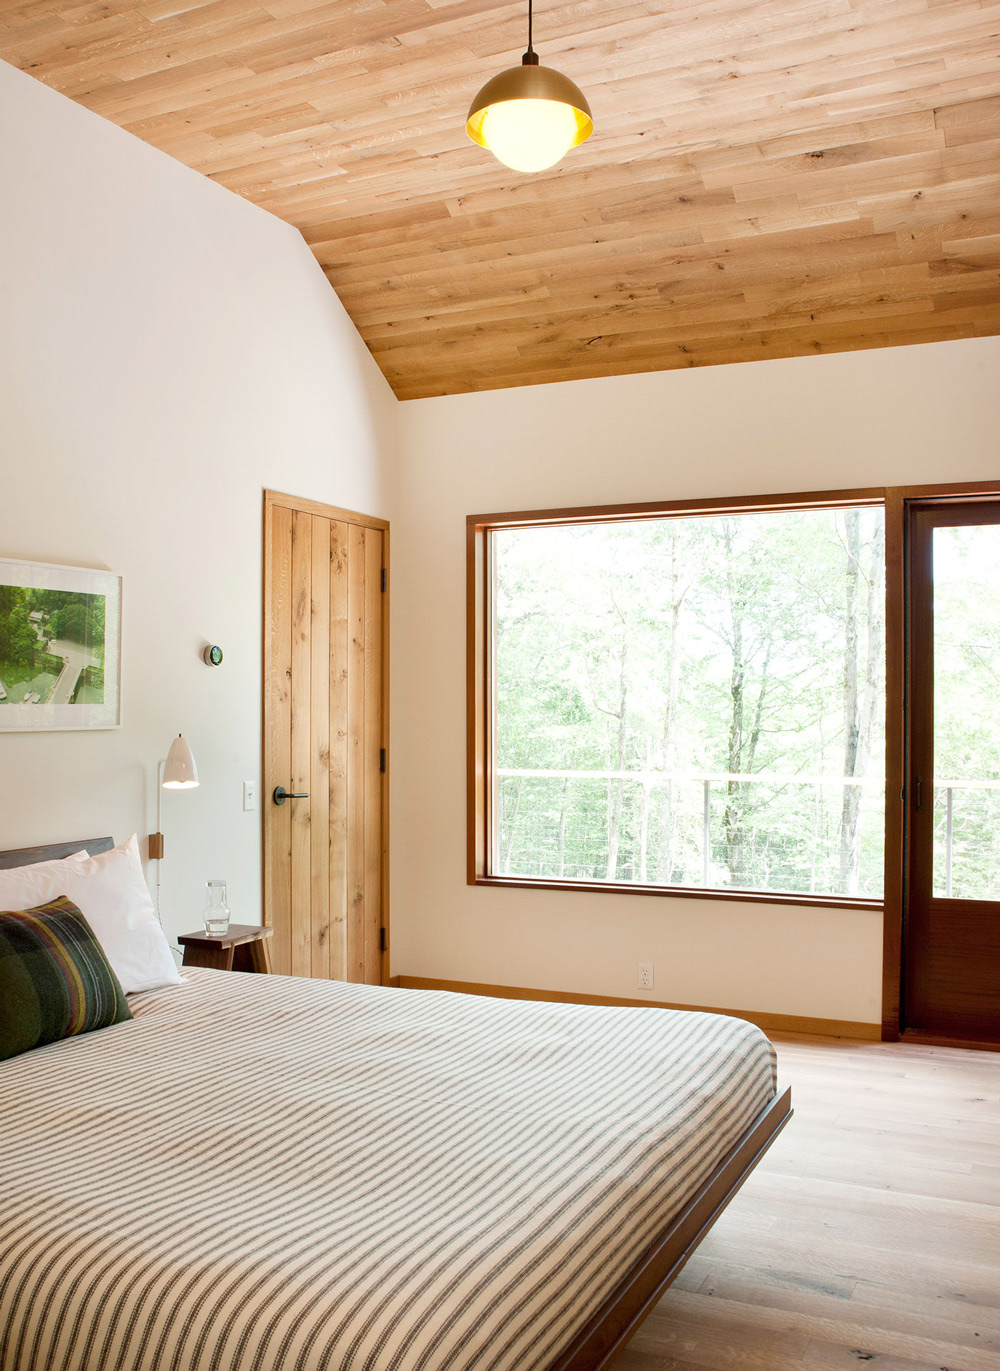 Bedroom, Wood and Glass House in Kerhonkson